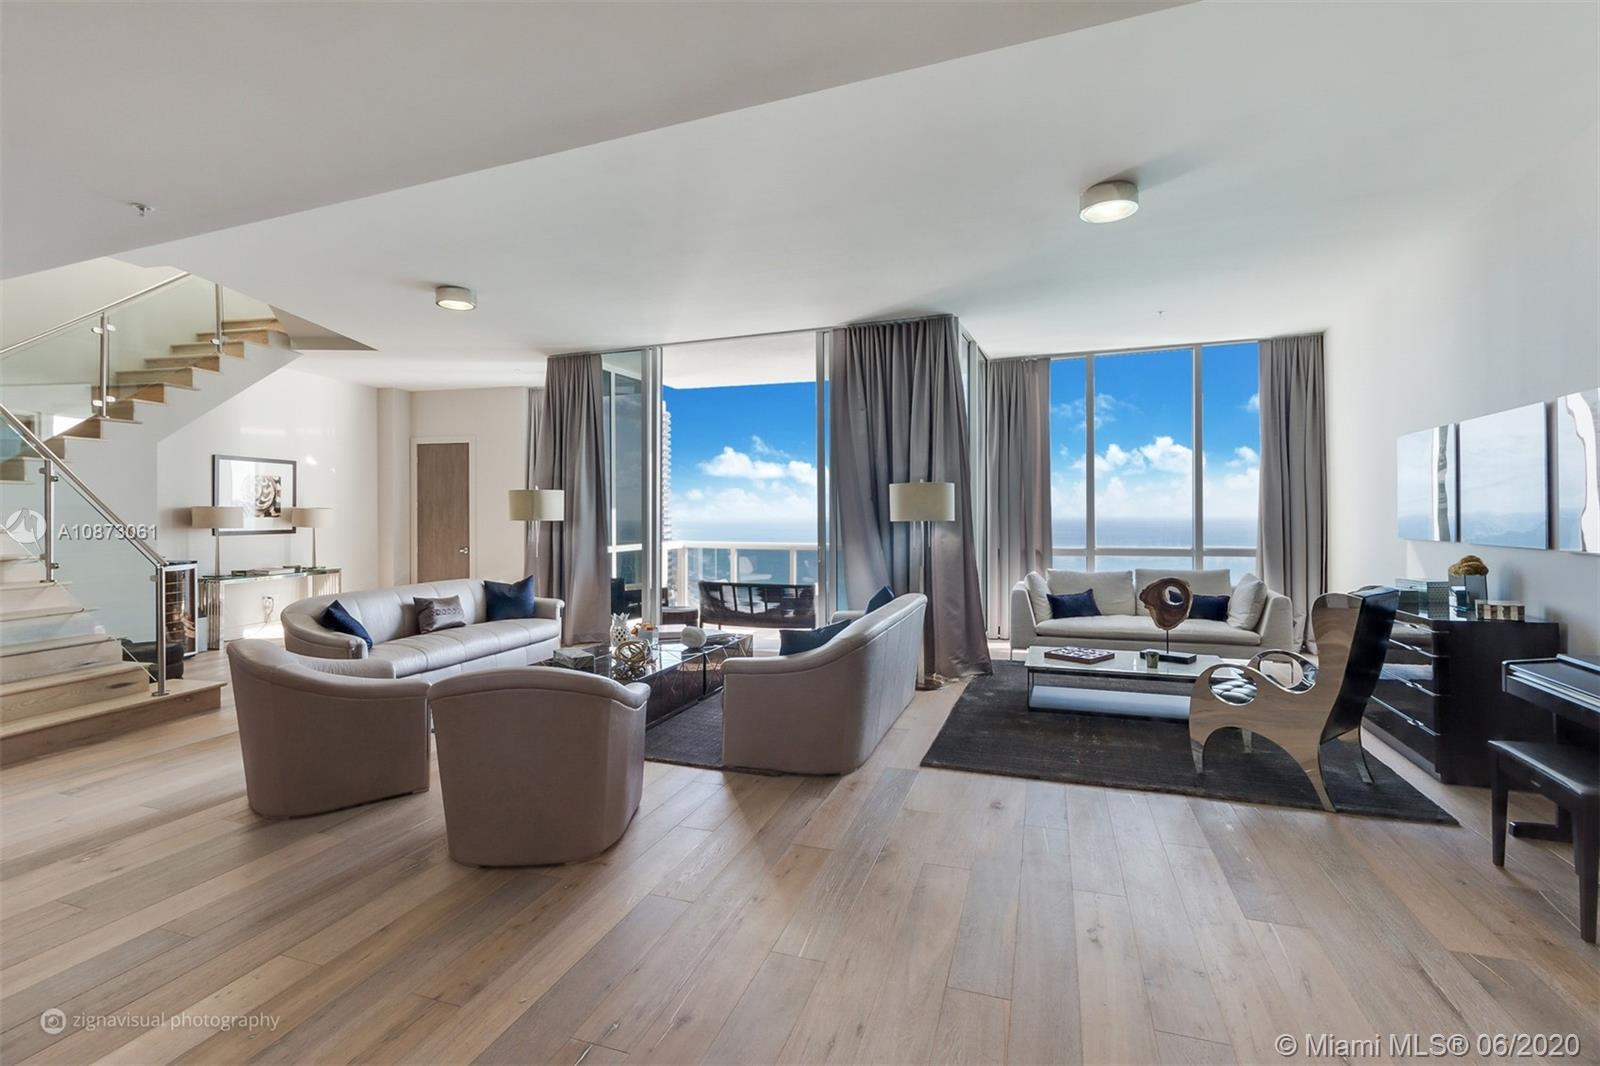 18201 Collins Ave, Unit #TS6 Luxury Real Estate